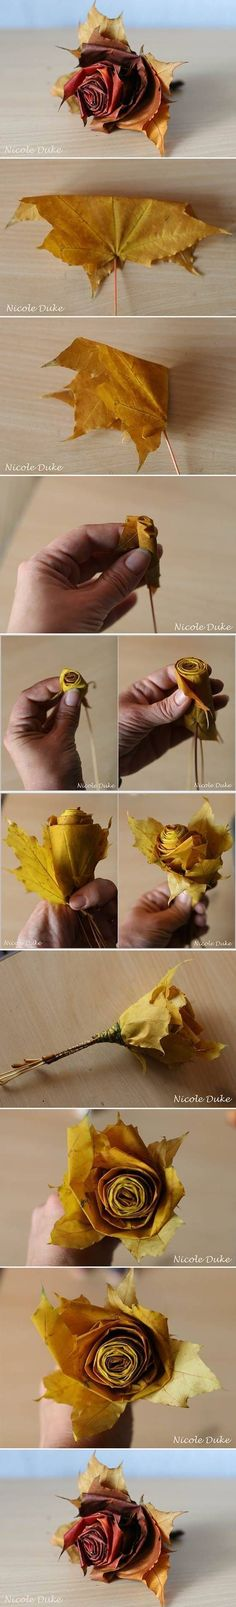 Make Fall Decoration yourself - 15 DIY Craft Ideas - Leaf Rose - Diy Fall Decor - Fall Crafts For Kids Kids Crafts, Leaf Crafts, Fall Crafts, Diy And Crafts, Craft Projects, Arts And Crafts, Paper Crafts, Craft Ideas, Diy Ideas